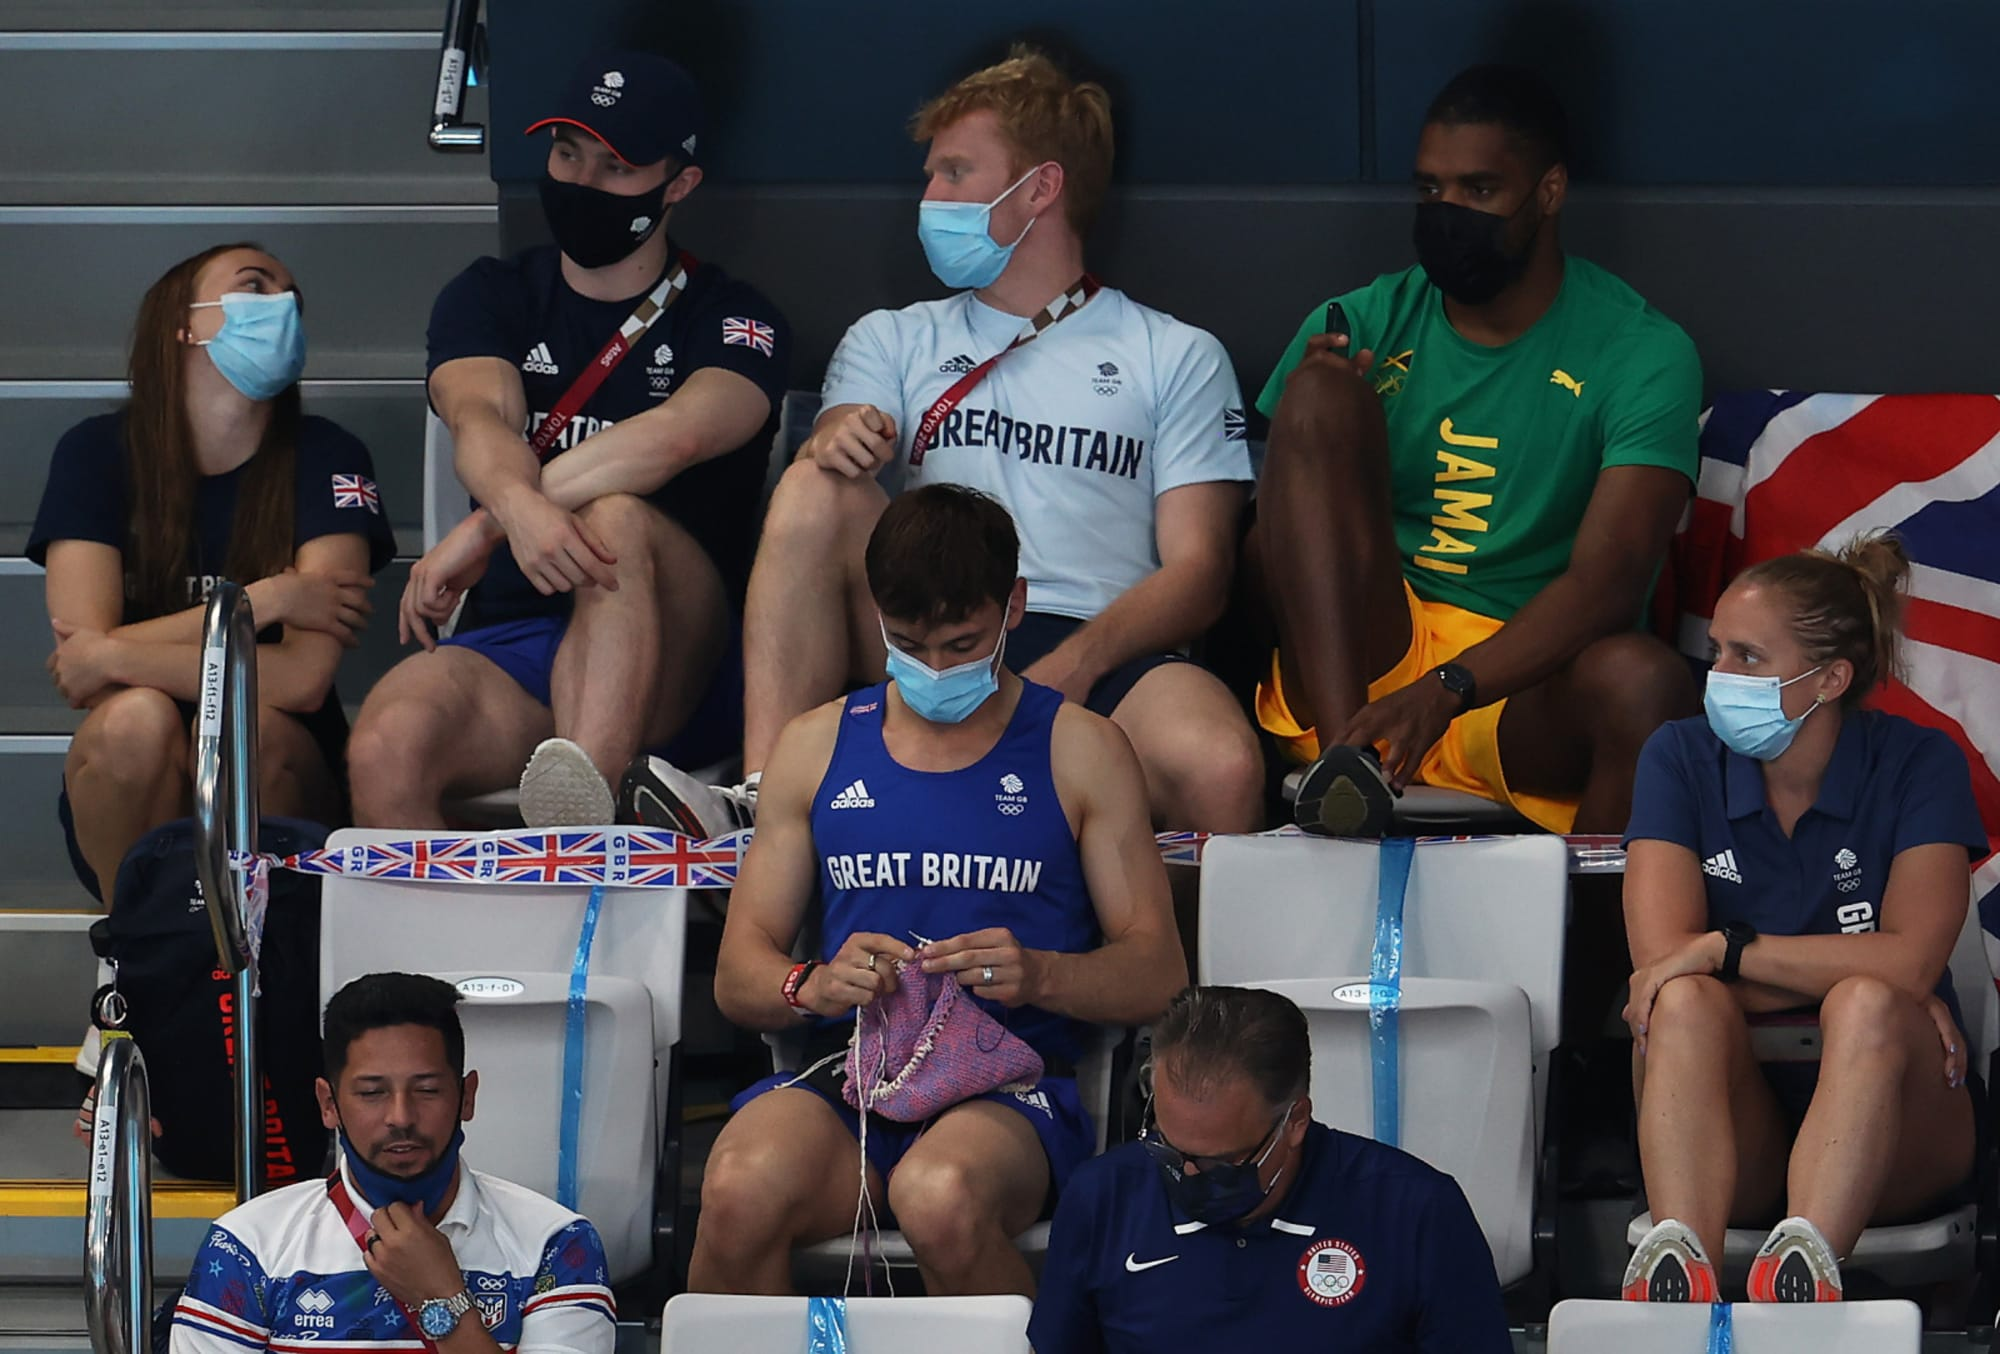 Diver Tom Daley knitting in the stands at the Olympics is beyond wholesome (Photo)